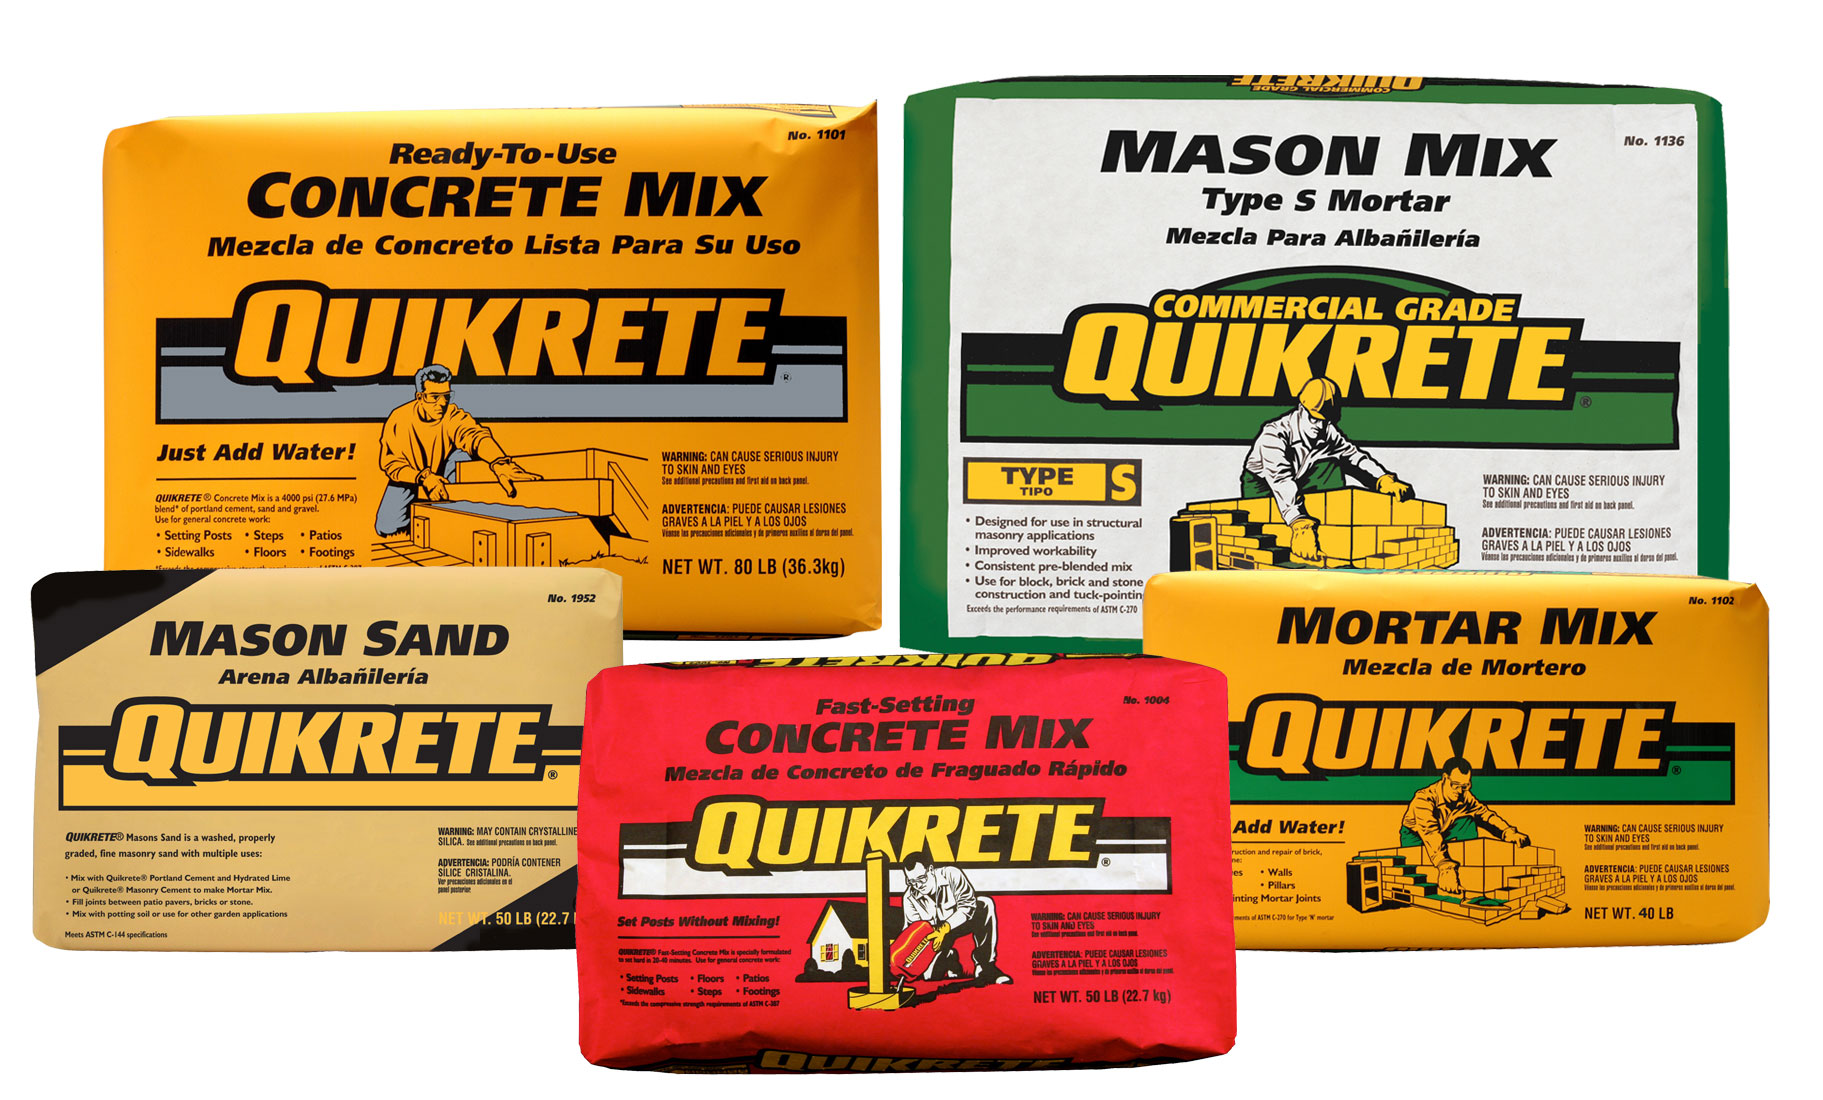 Quickrete products